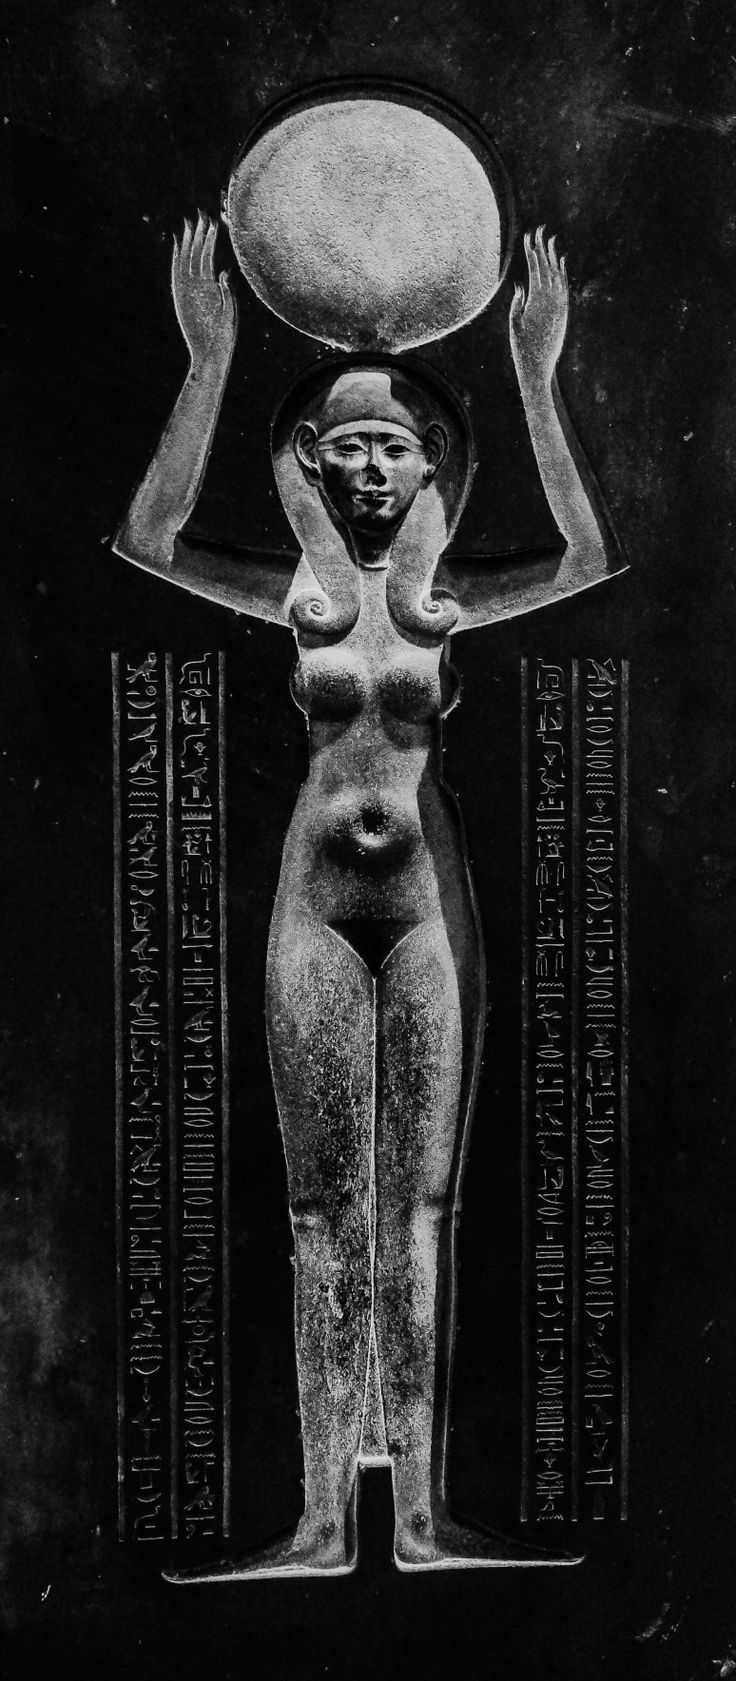 Sarcophagus Cover of Djedhor showing the Egyptian Goddess Nut (Goddess of Heavens and Sky, representing Resurrection) raising the Sun, 305 BC. Nut was the Goddess of the Sky and all Heavenly bodies, a...